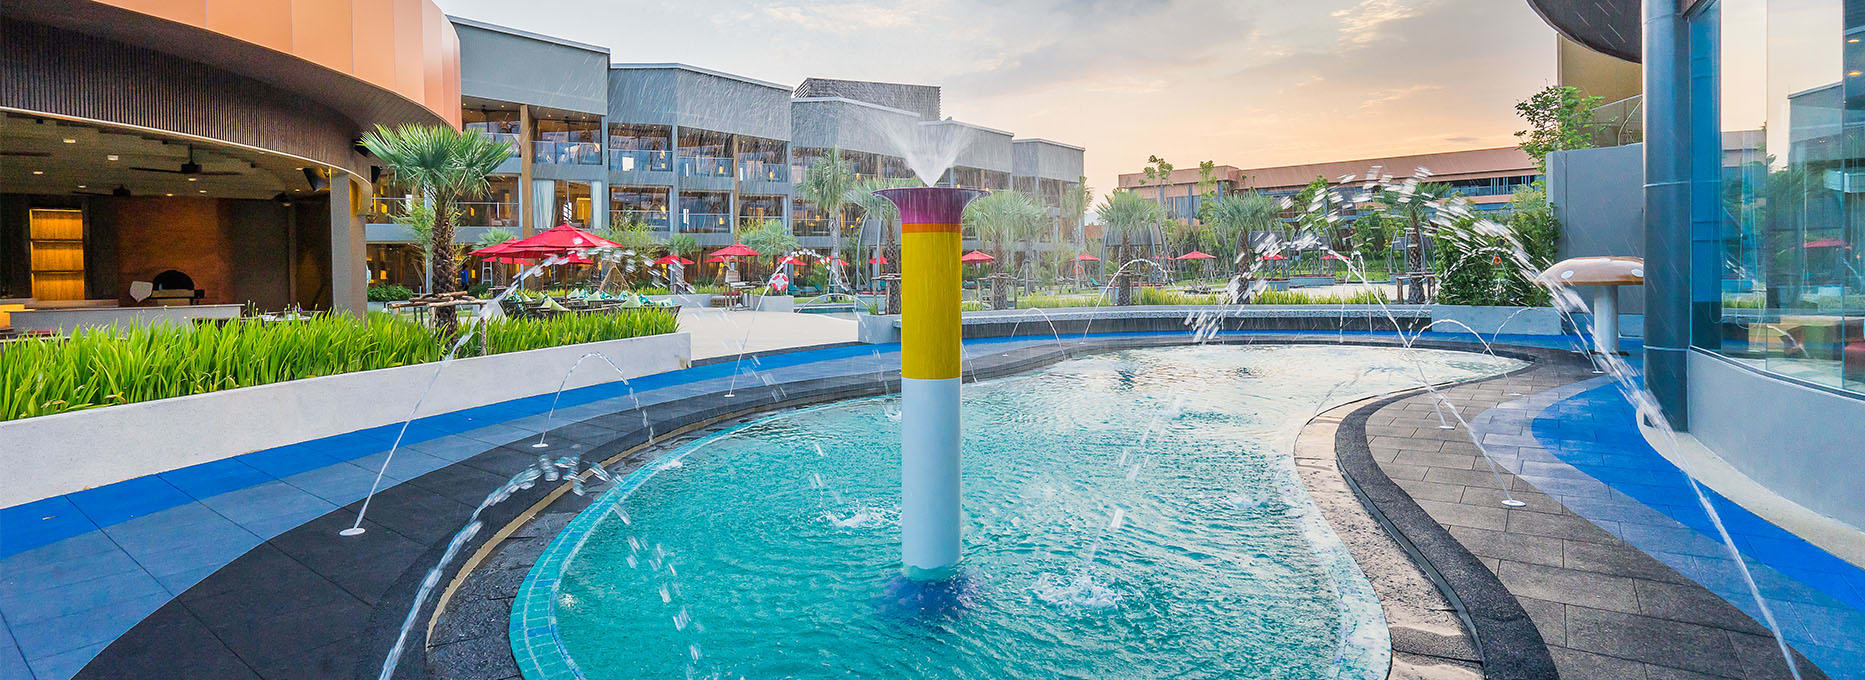 Outdoor kids pool at AVANI Hua Hin